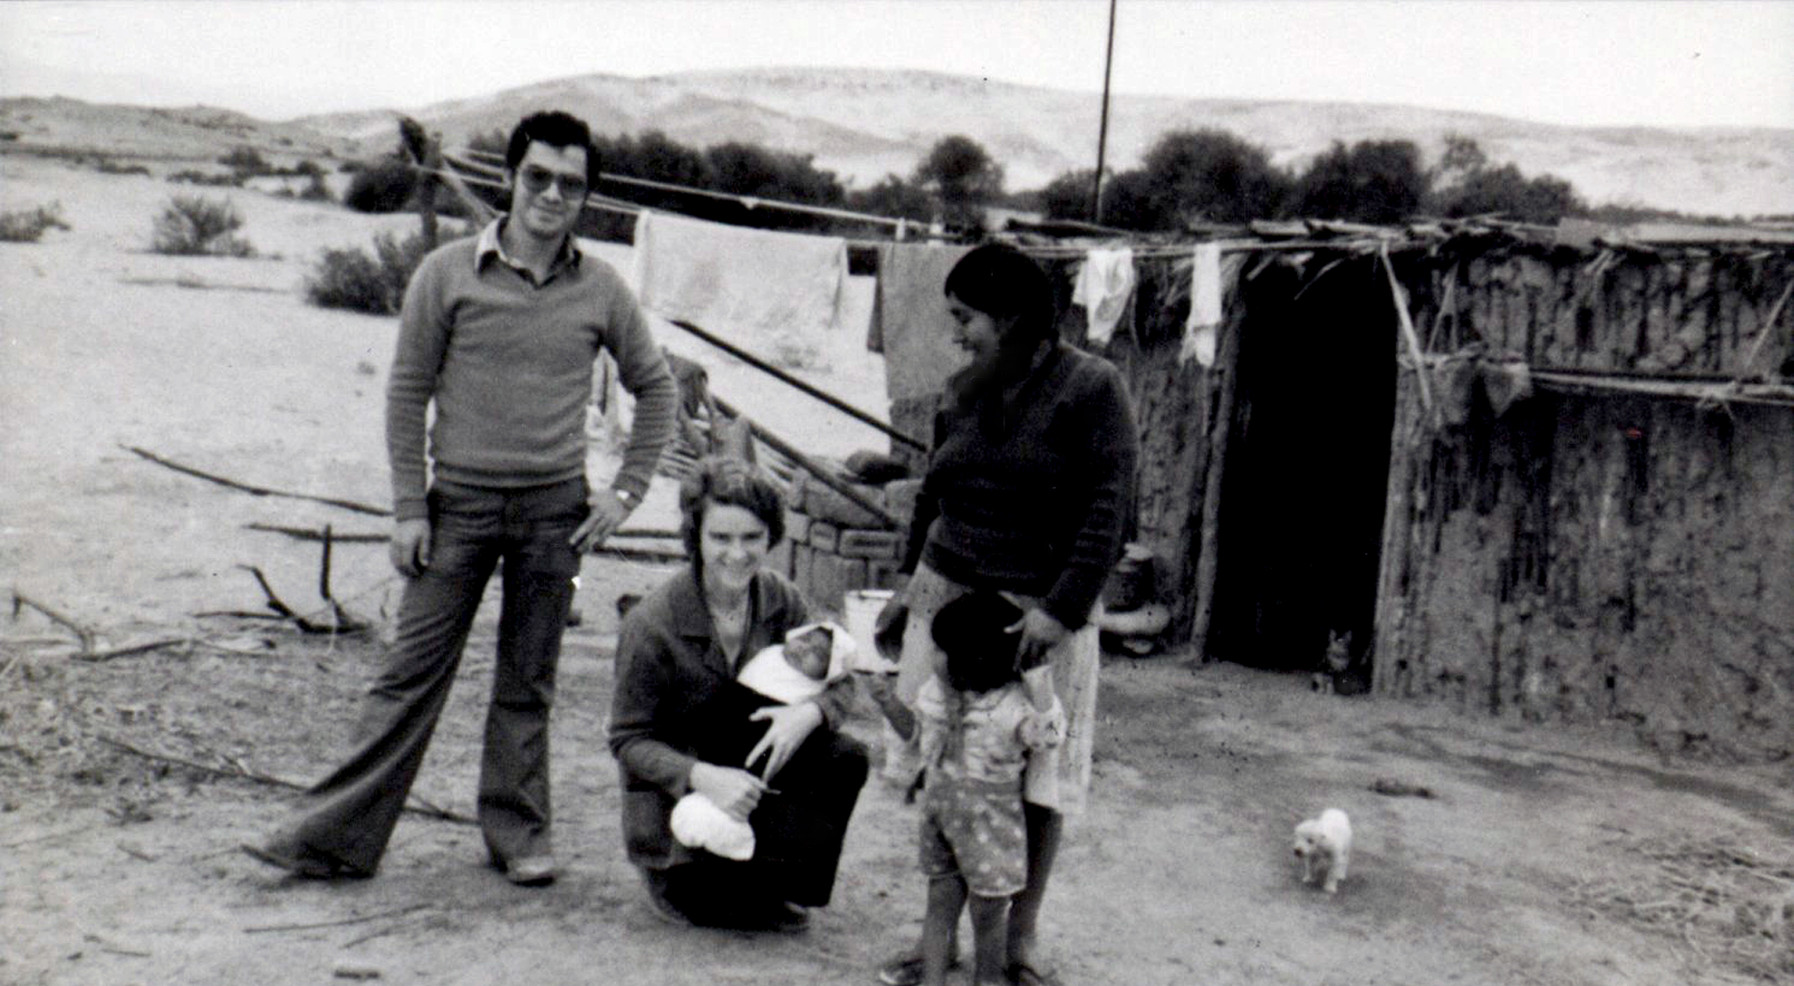 In 1981, three Sisters opened a mission in Cambio Puente, Peru, where they worked with exploited campesinos on the outskirts of Chimbote. Sr. Rosaleen Harold (pictured holding a baby) was one of the three Sisters who went to Cambio Puente. Sr. Rosaleen served in Peru for more than 30 years.